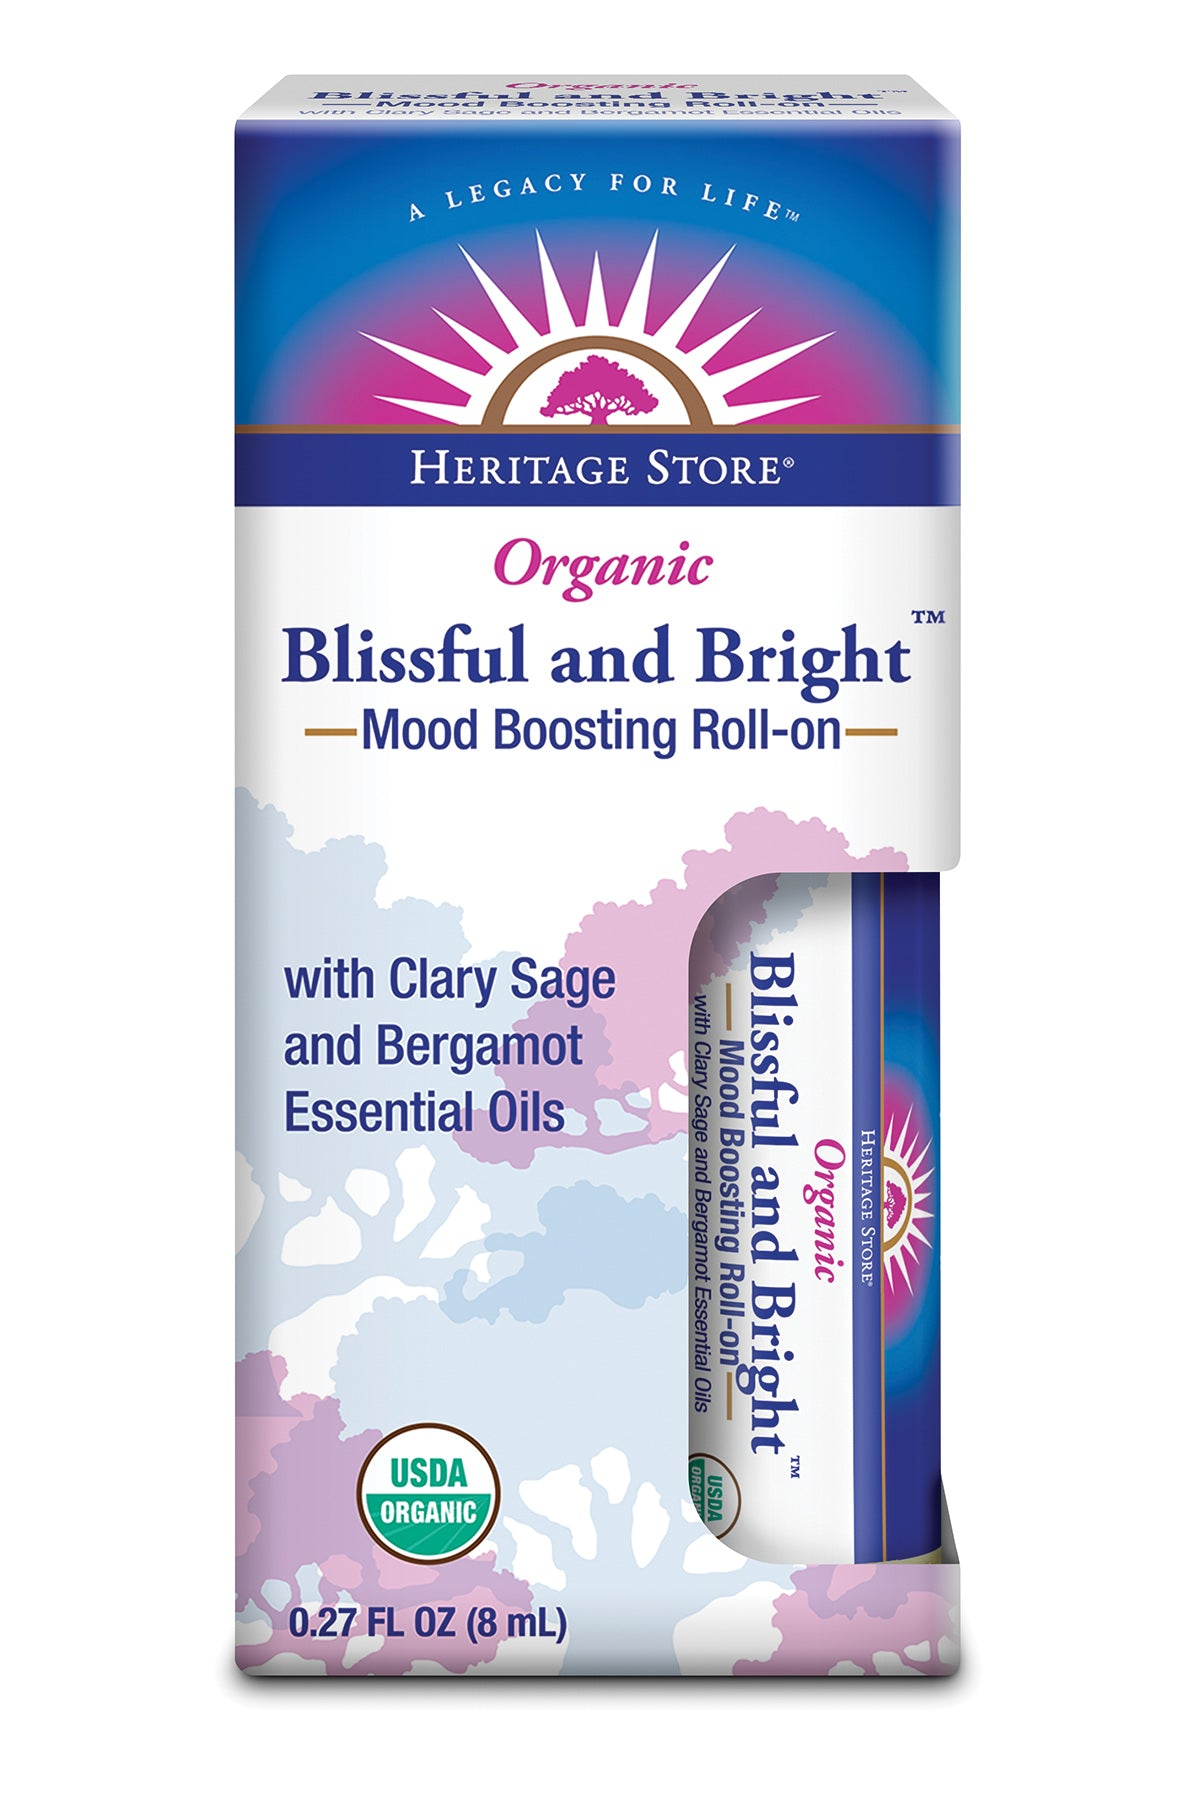 Blissful and Bright Roll-On - Mood Boosting